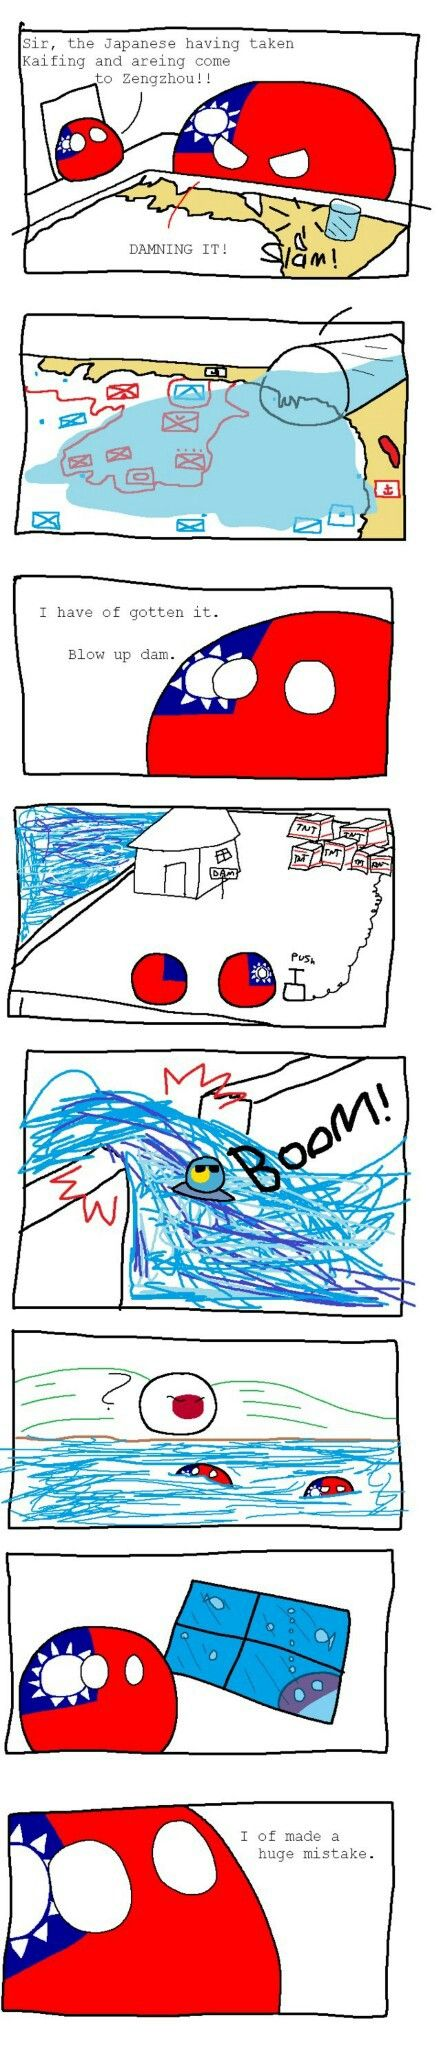 That battle where 800,000 idiots drowned.|     (The 1938 Yellow River flood was created by the Nationalist Government in central China in an attempt to halt the rapid advance of Japanese forces.) |Countryballs.